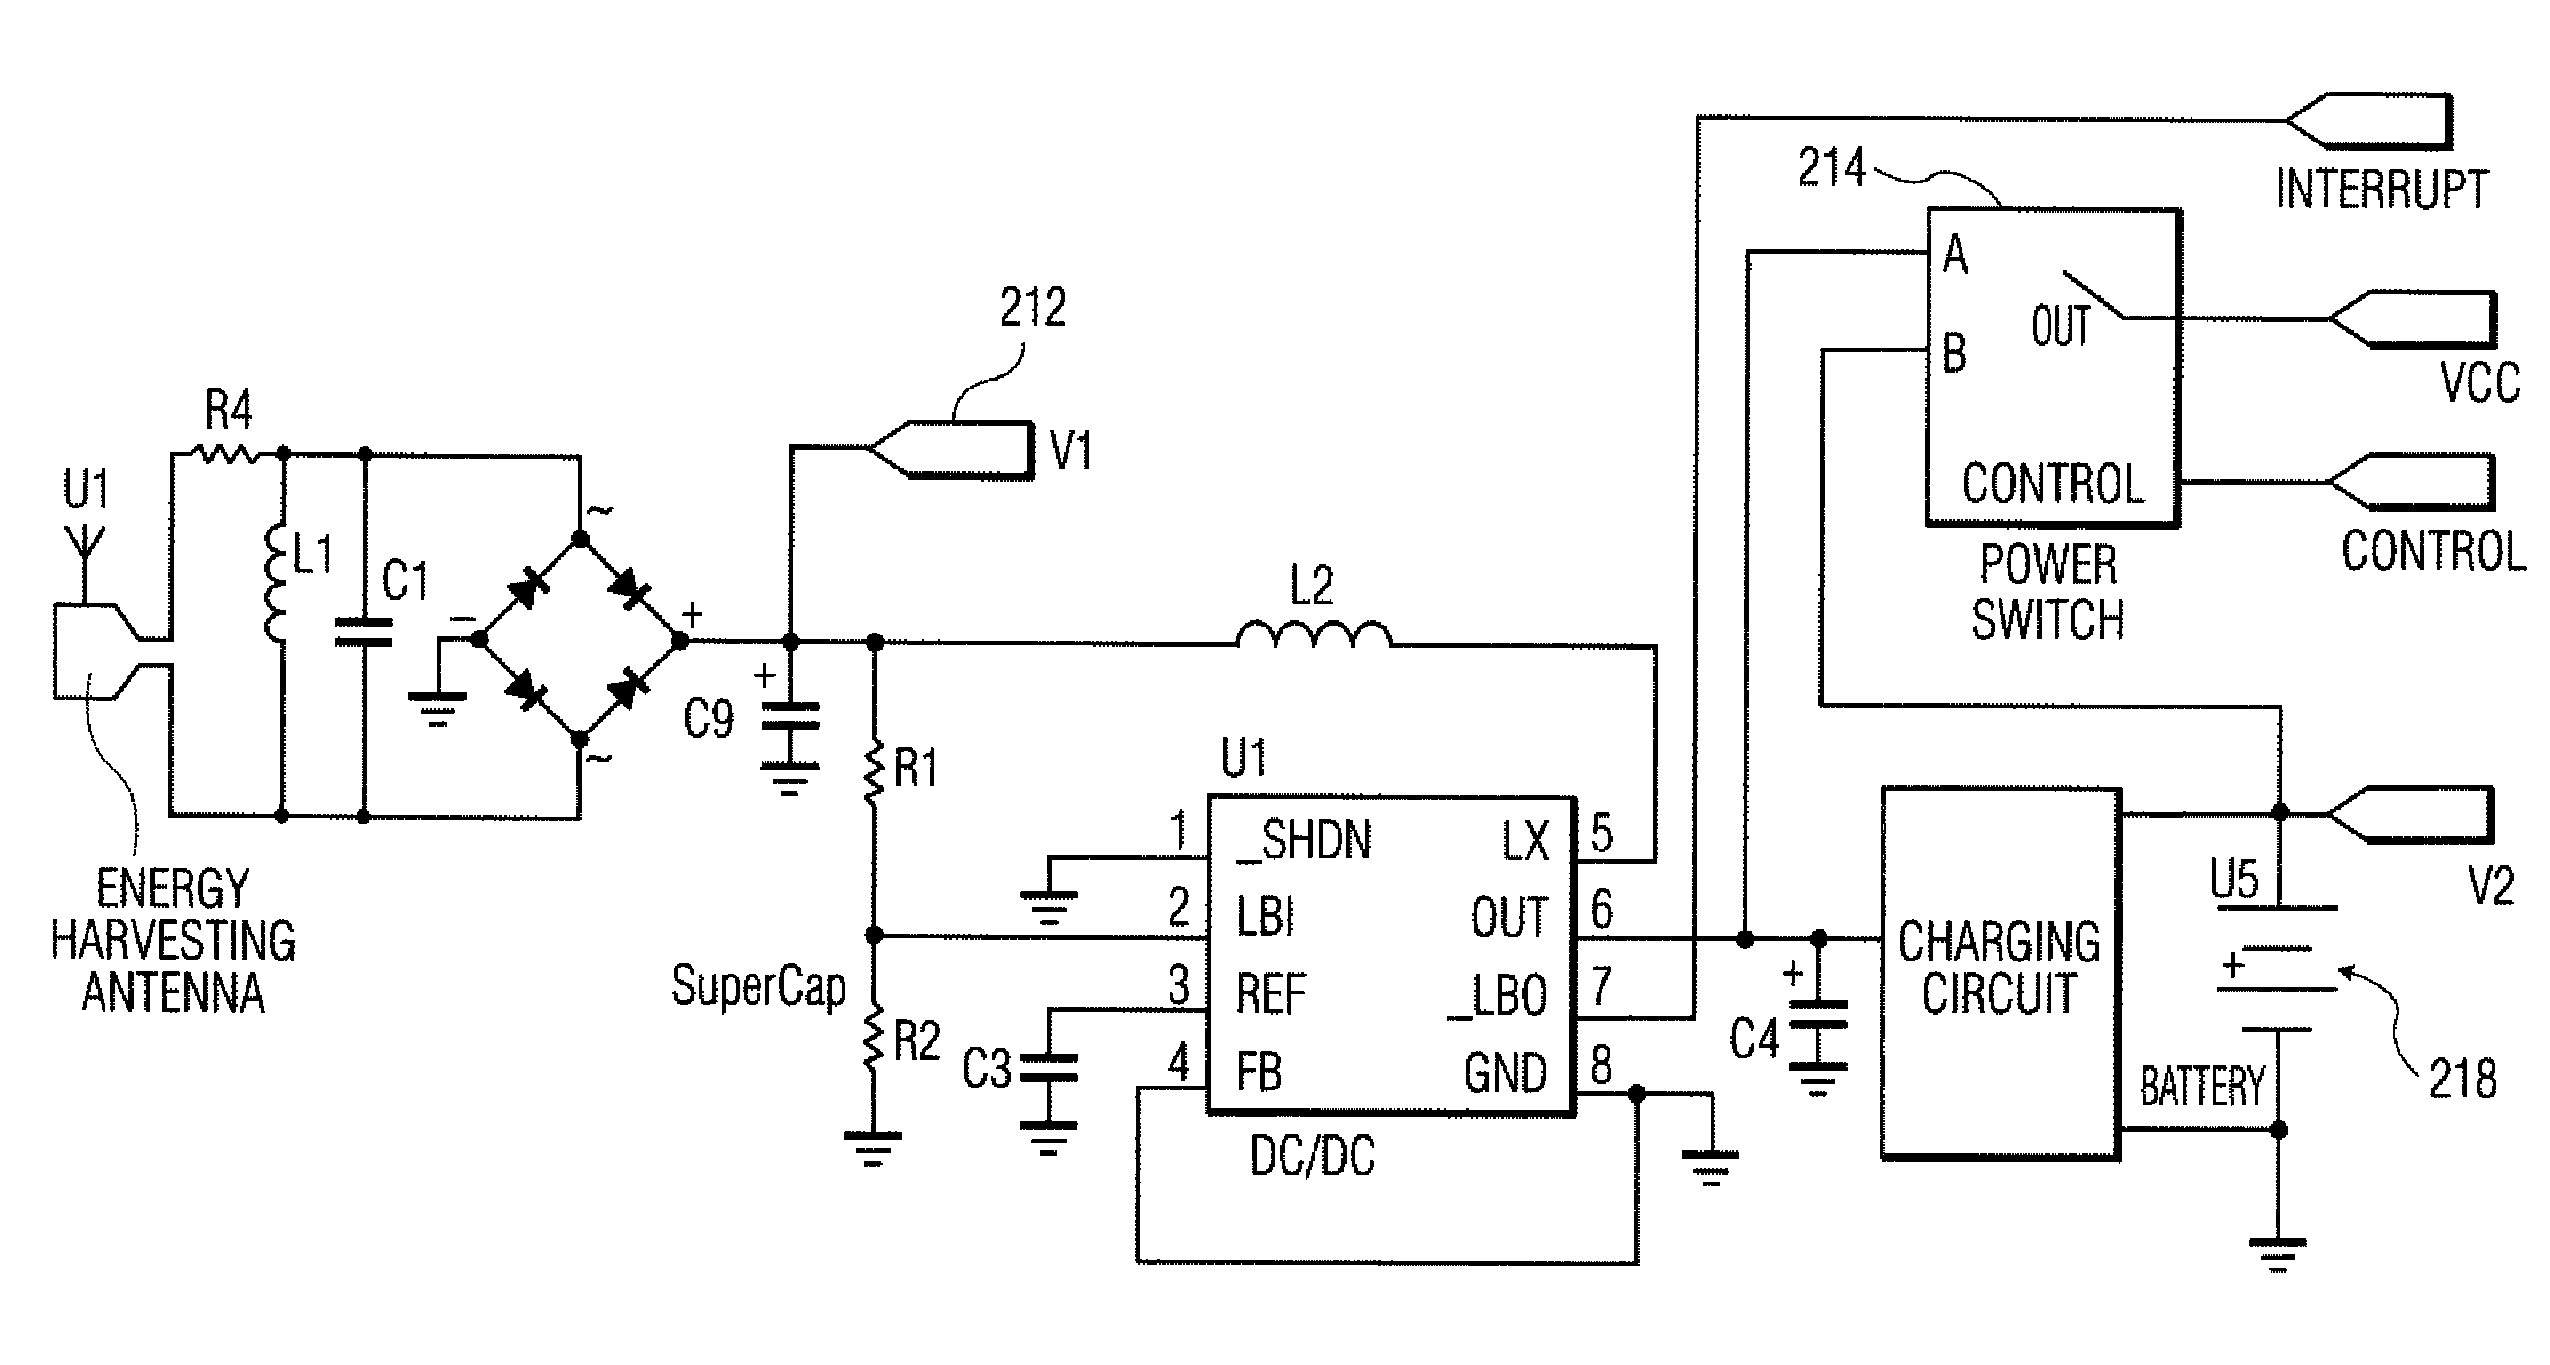 claims 8 1 an energy harvesting circuit comprising a plurality of